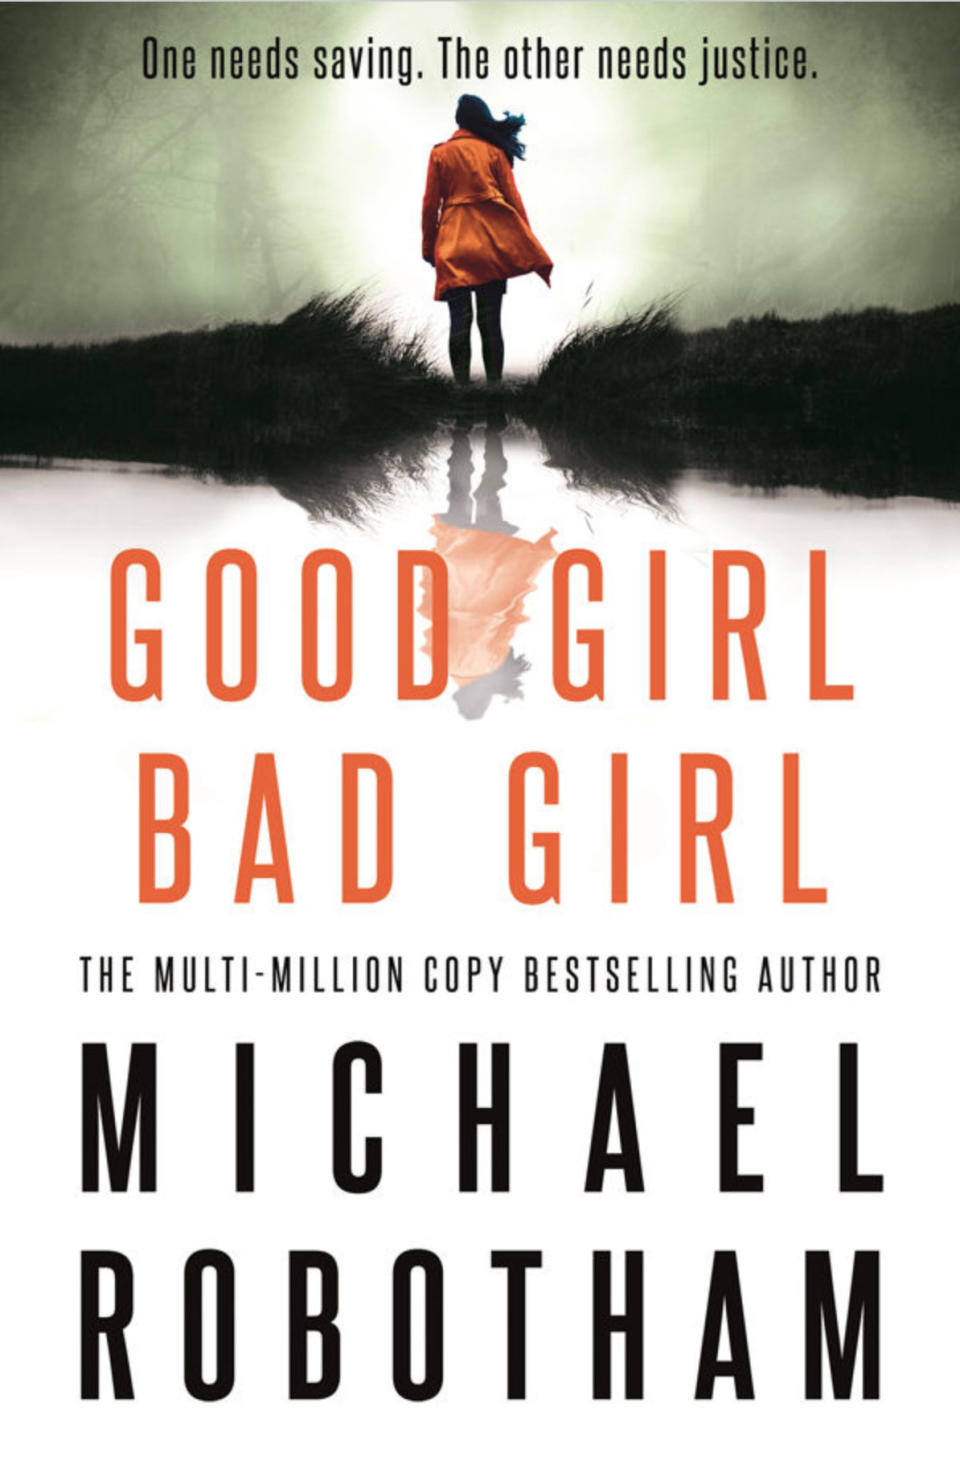 The Australian author was honoured with the gold dagger for Good Girl, Bad Girl (Crime Writers' Association/PA)